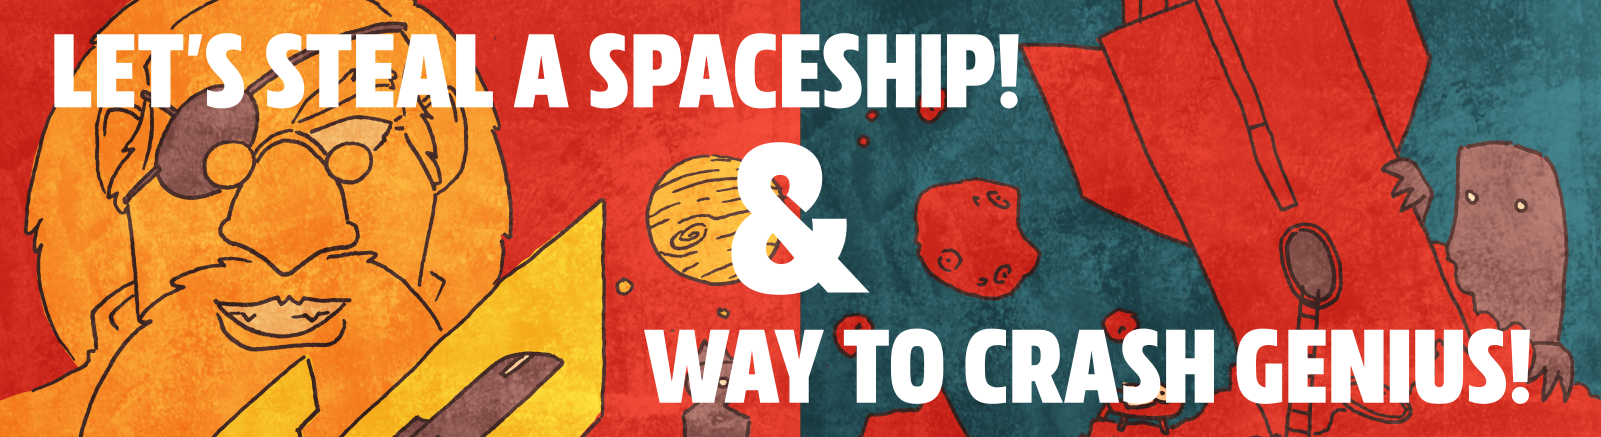 Let's Steal A Spaceship! and Way To Crash Genius!